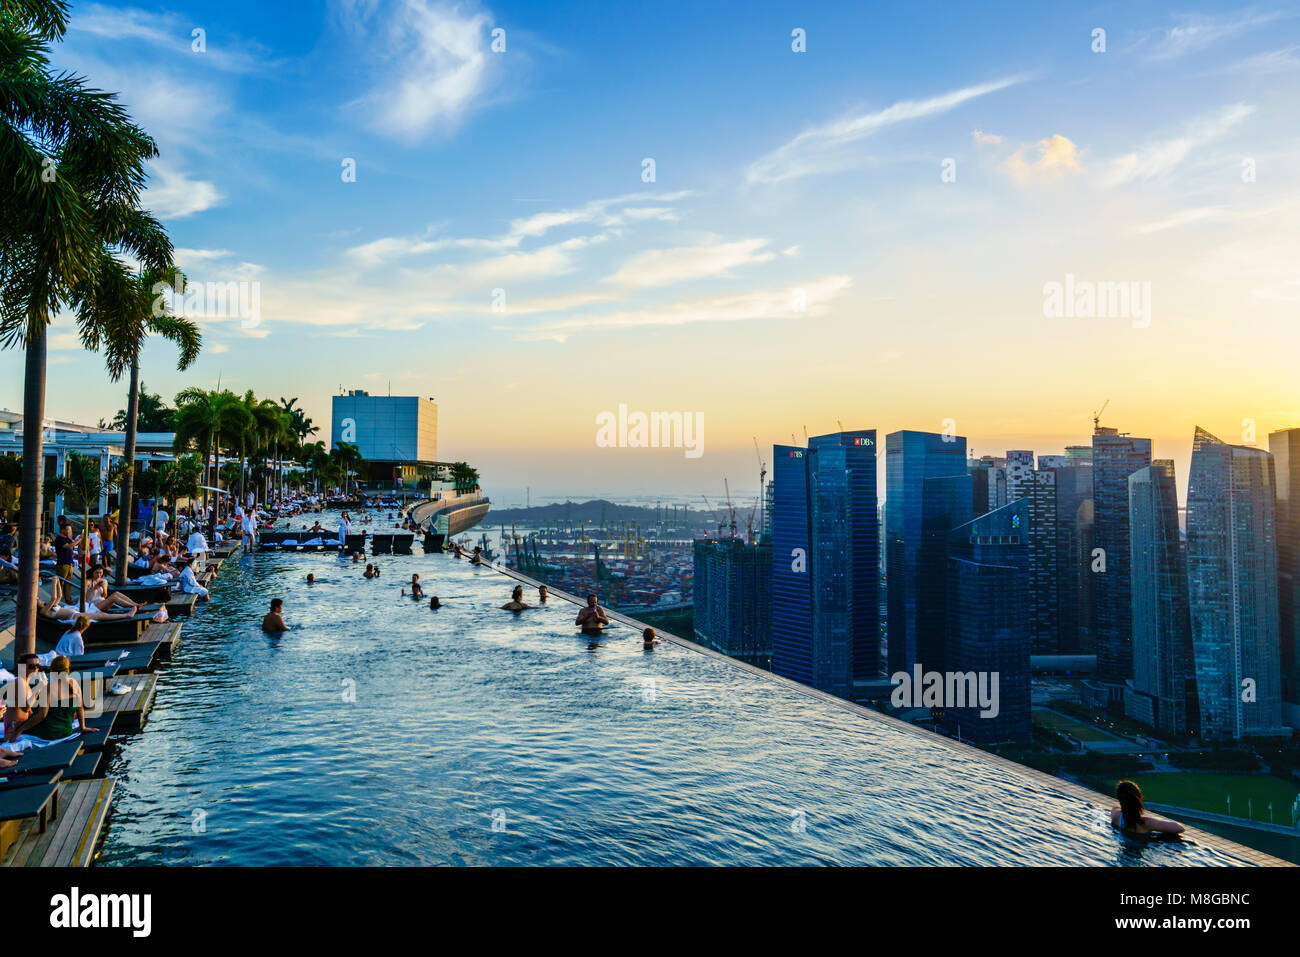 Hotel rooftop pool stock photos hotel rooftop pool stock images alamy - Singapore hotel piscina ...